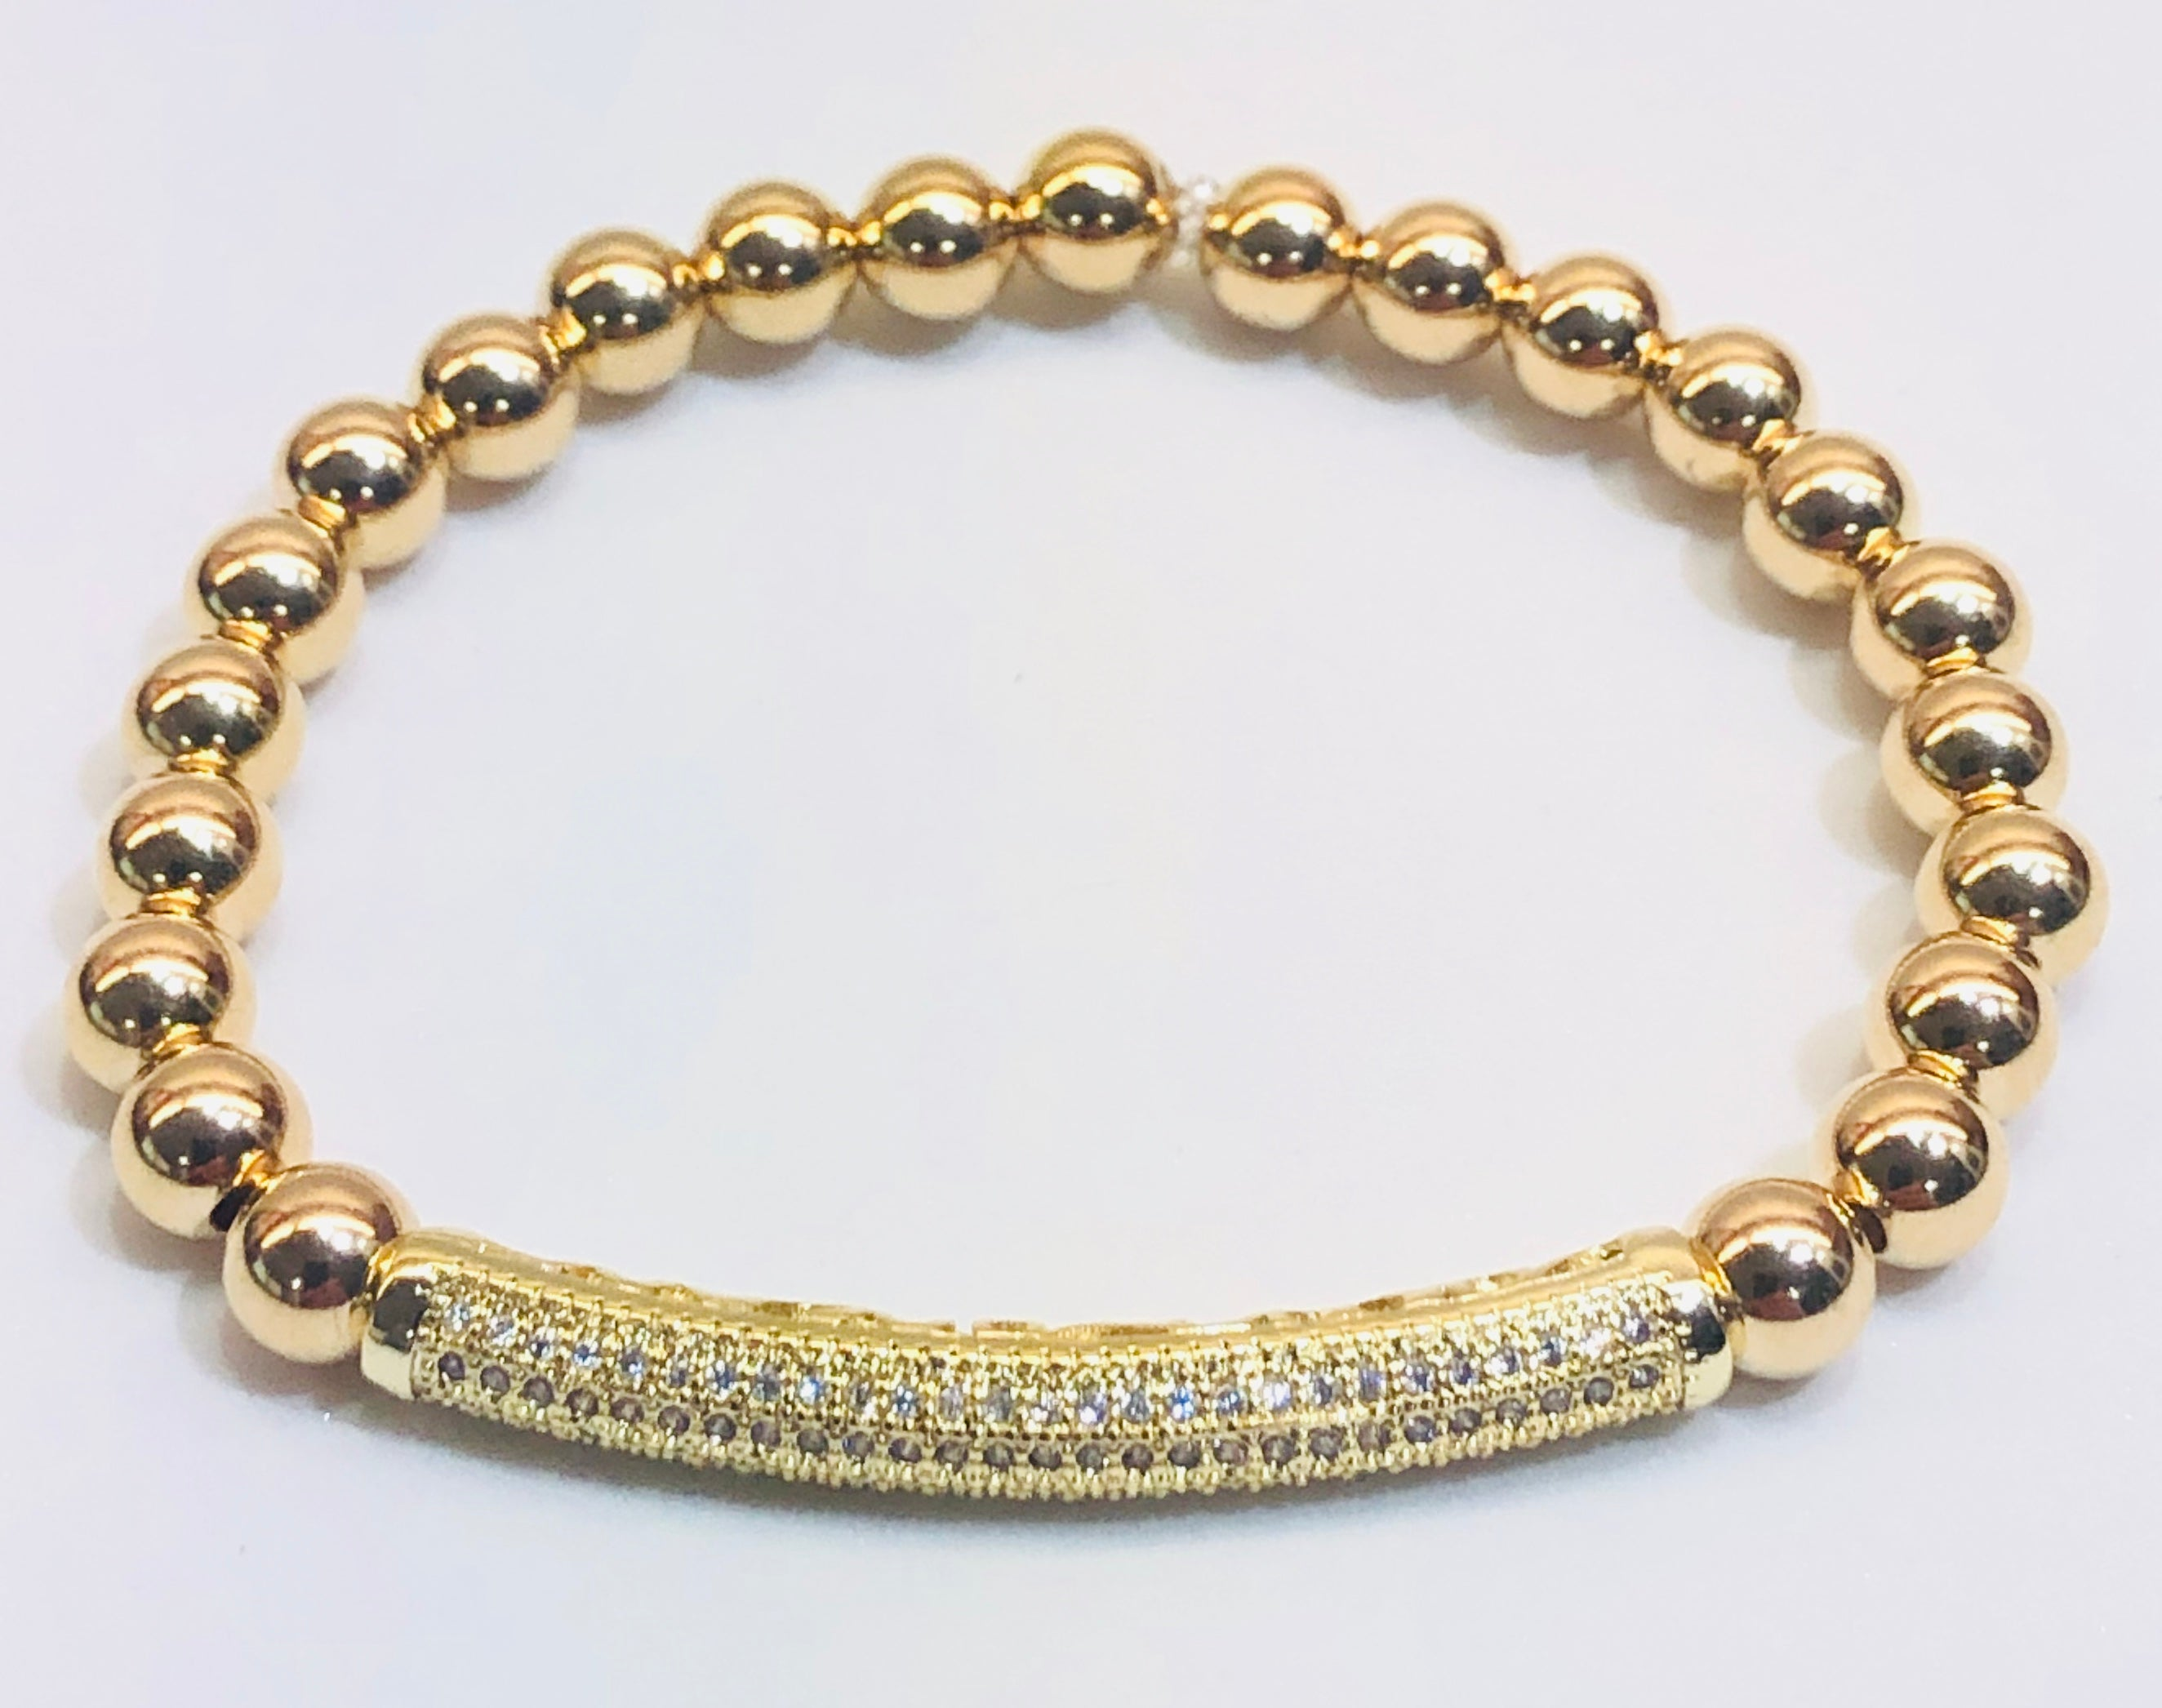 6mm Gold Filled Bead Bracelet with Micro CZ Pave Jeweled Tube